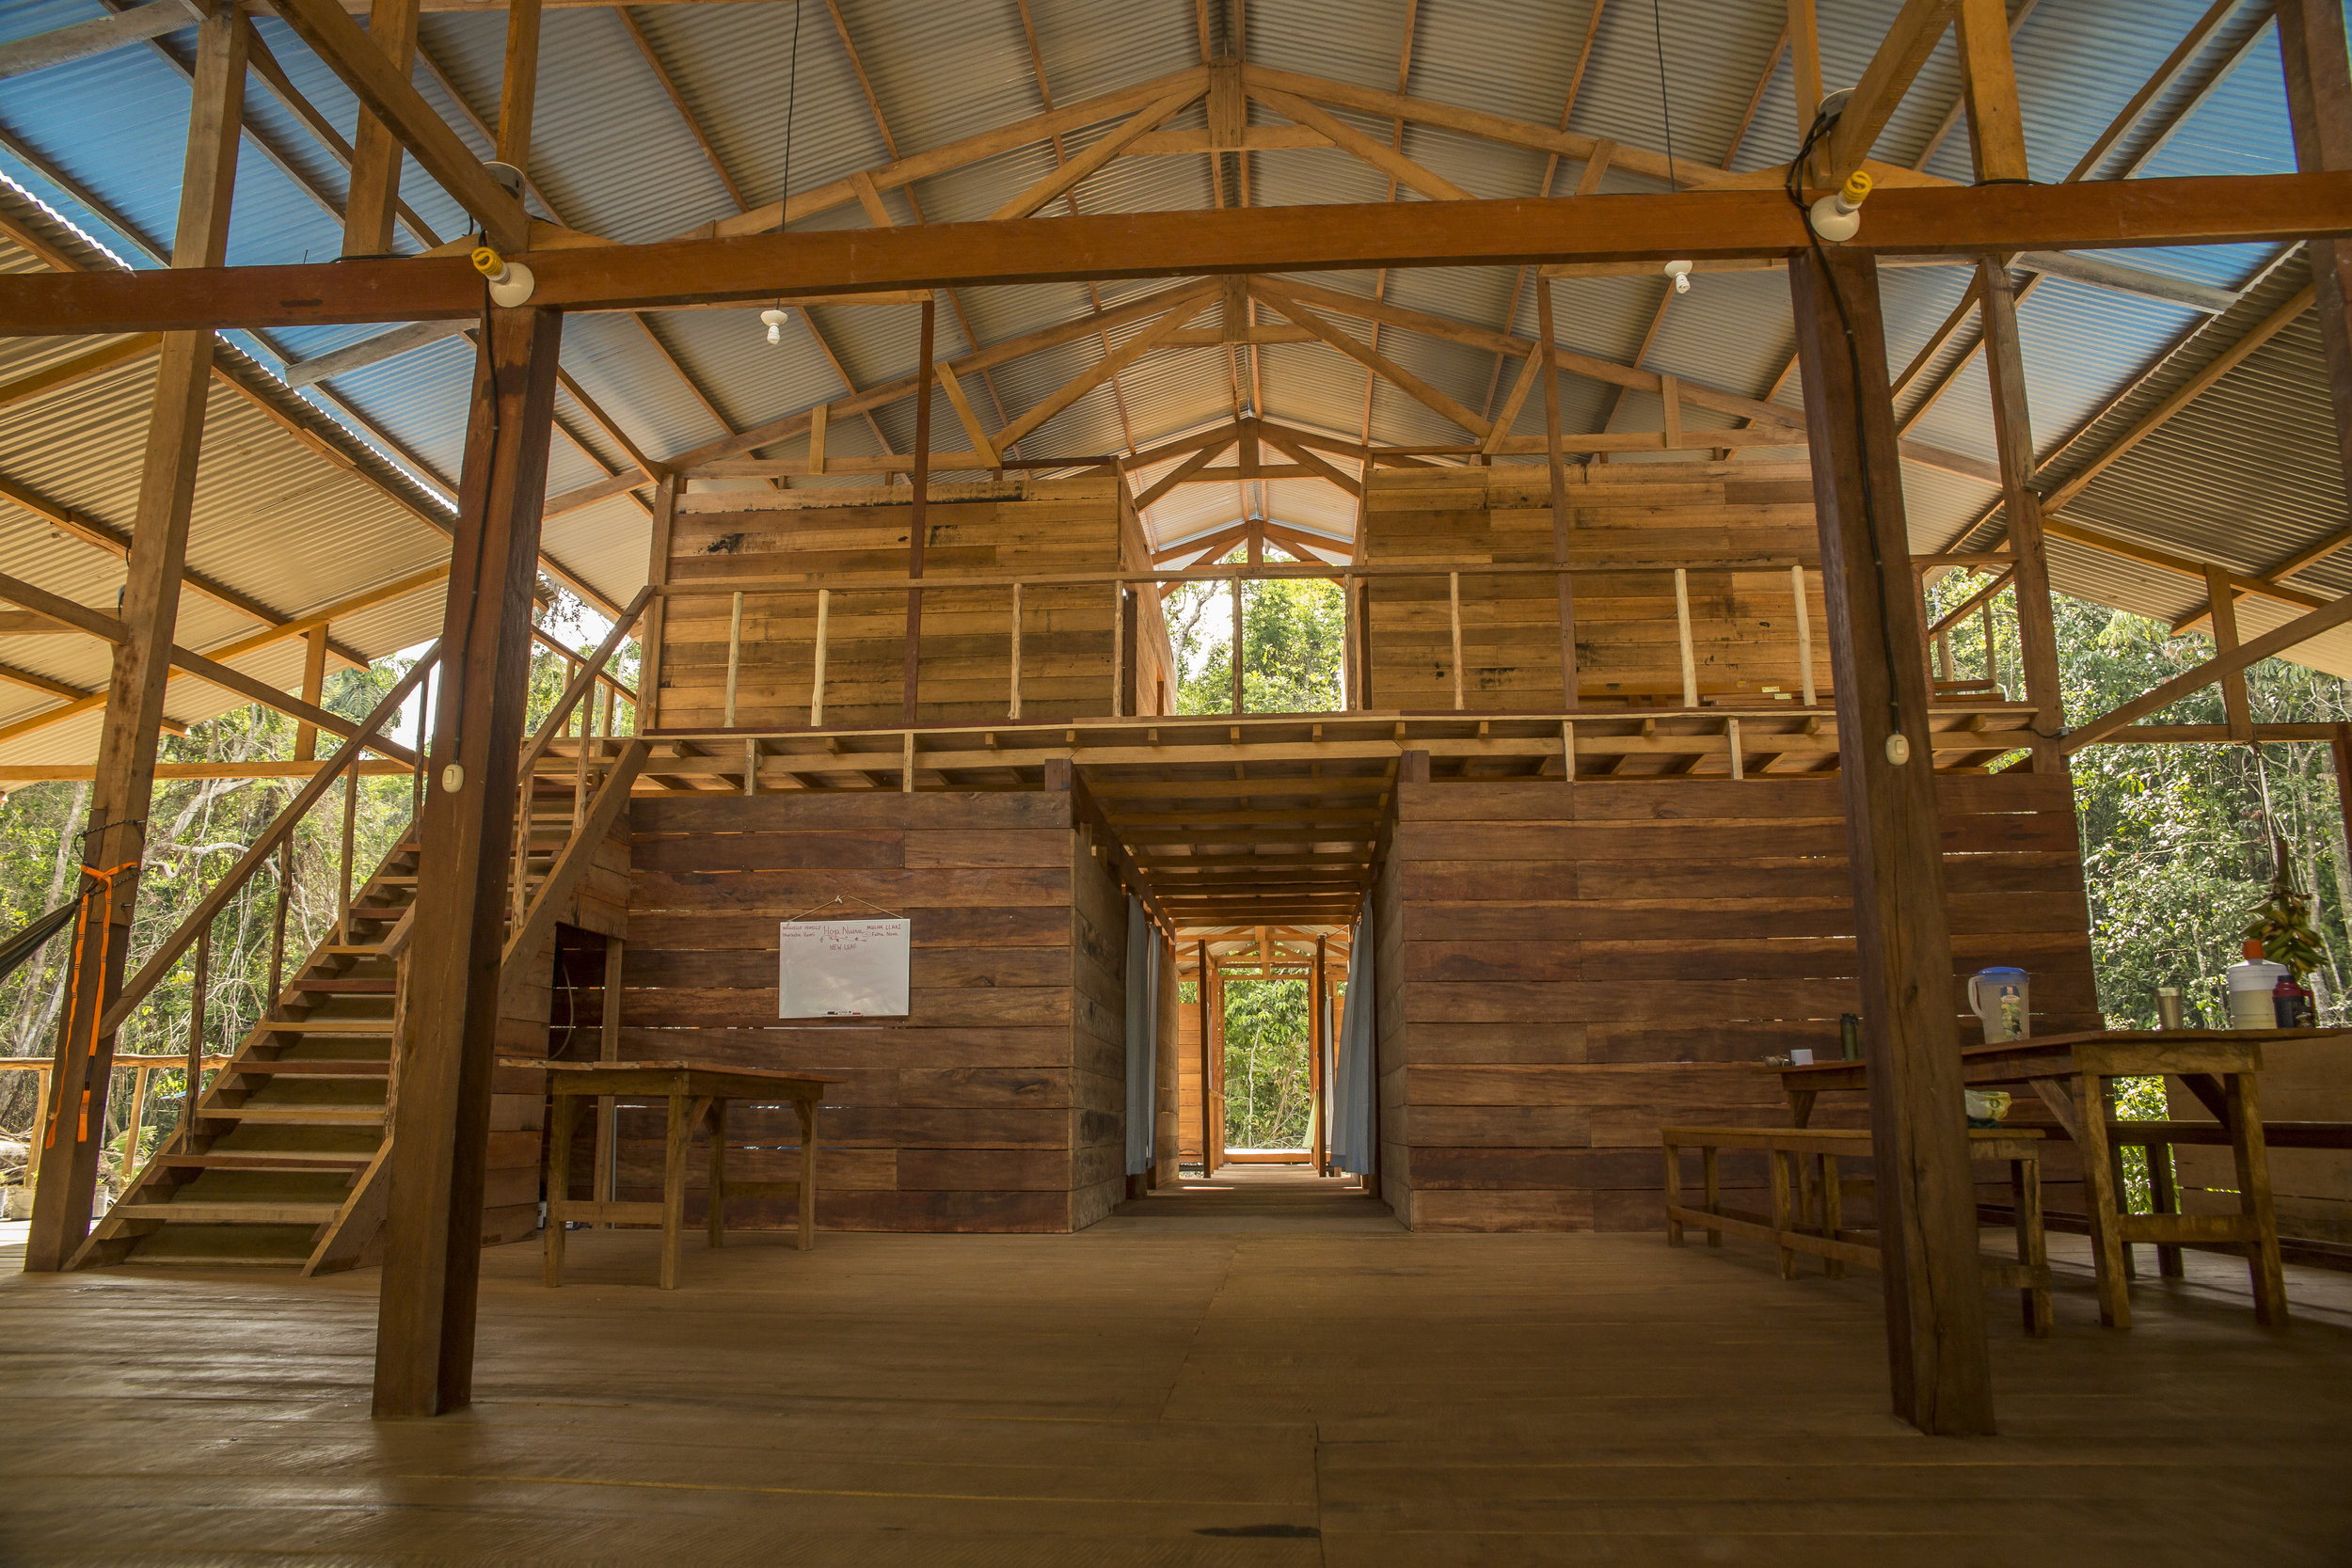 Pictured: The eco-lodge built for Hoja Nueva's research